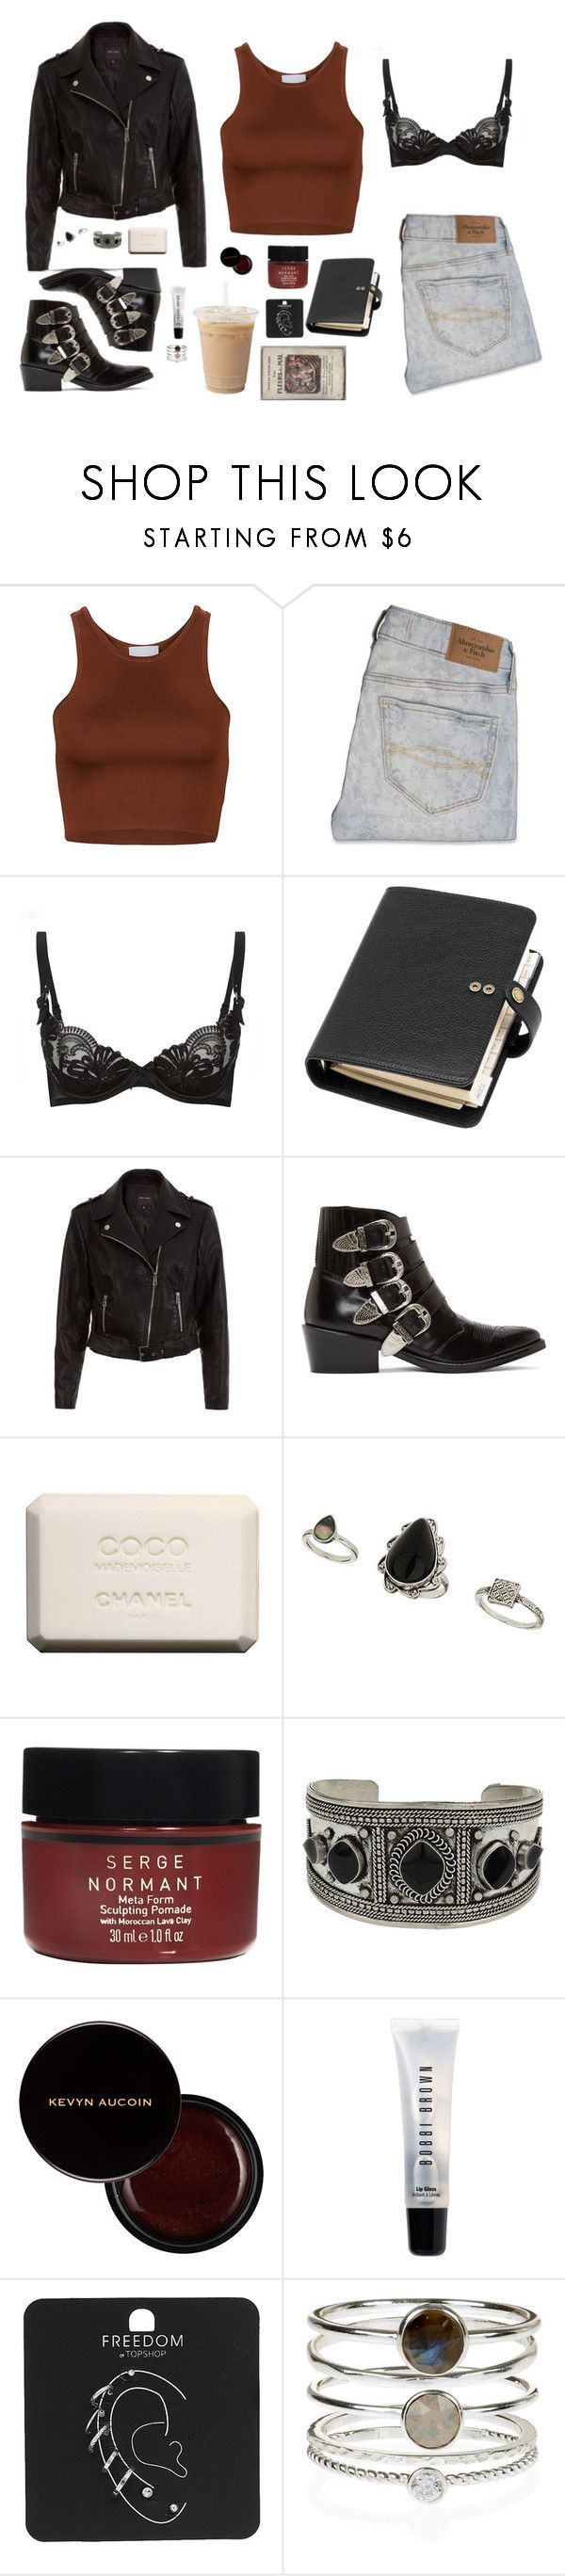 """""""2nd day"""" by feelin-q ❤ liked on Polyvore featuring Abercrombie & Fitch, Agent Provocateur, Mulberry, New Look, Toga, Chanel, Topshop, Serge Normant, Kevyn Aucoin and Bobbi Brown Cosmetics"""